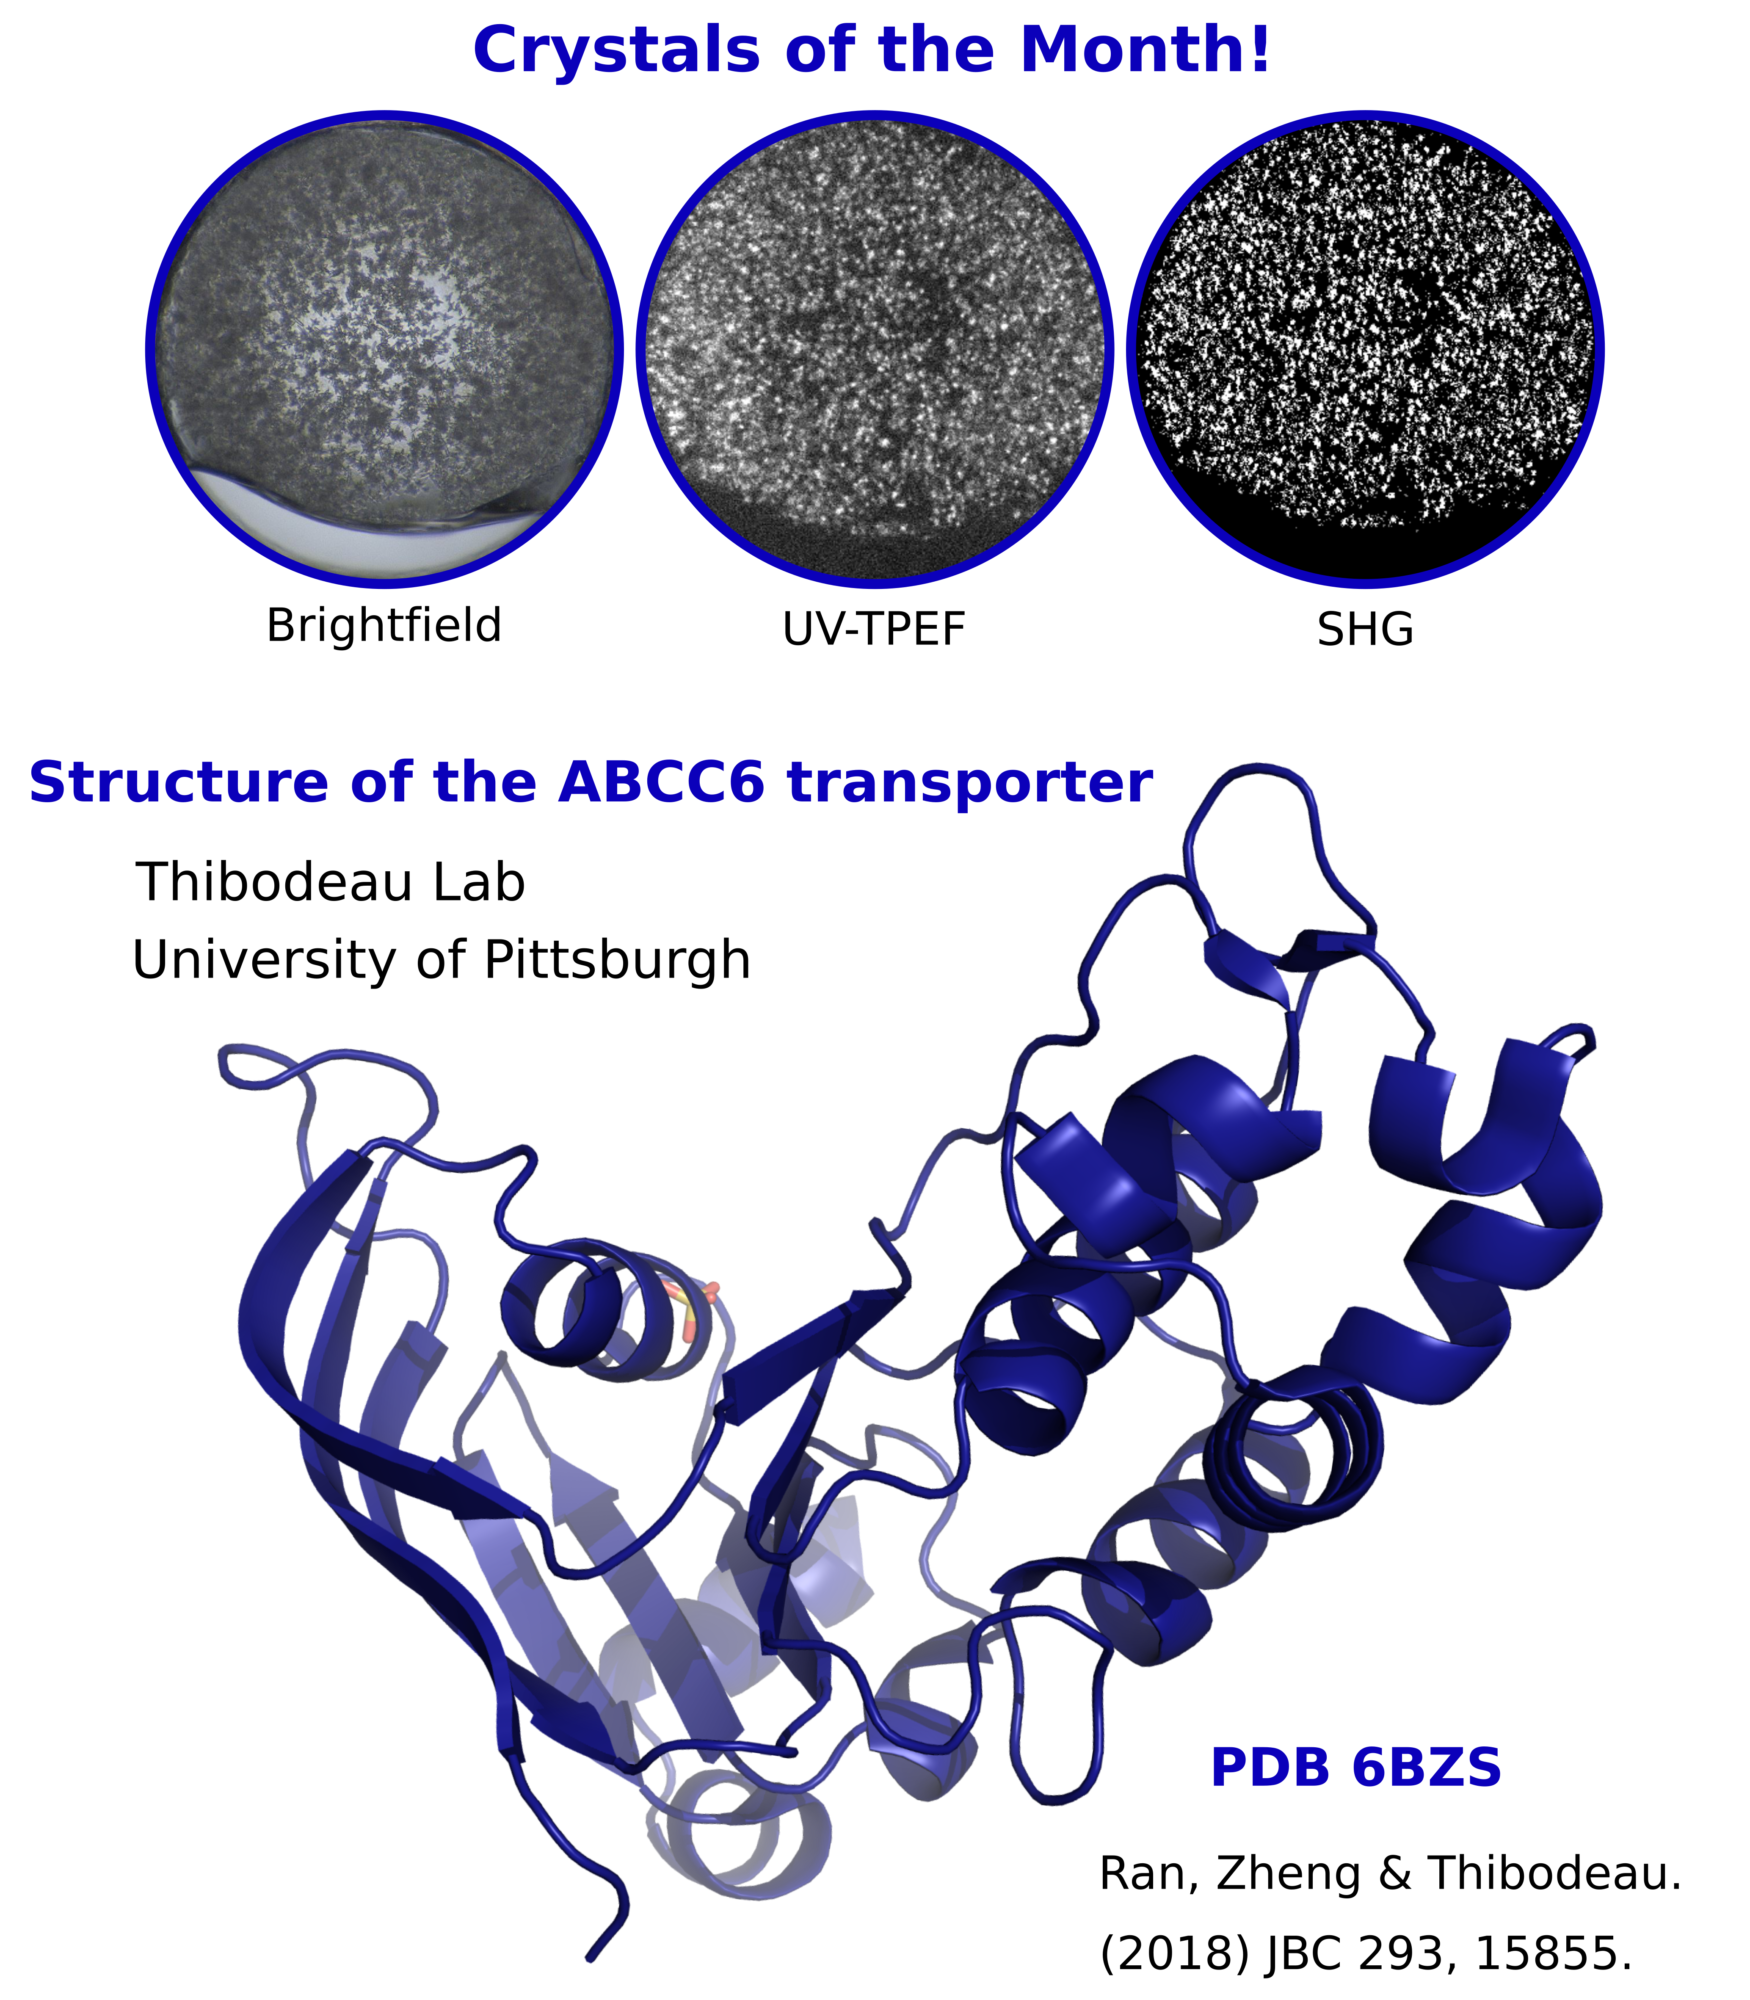 Structural analysis of the ABCC6 transporter